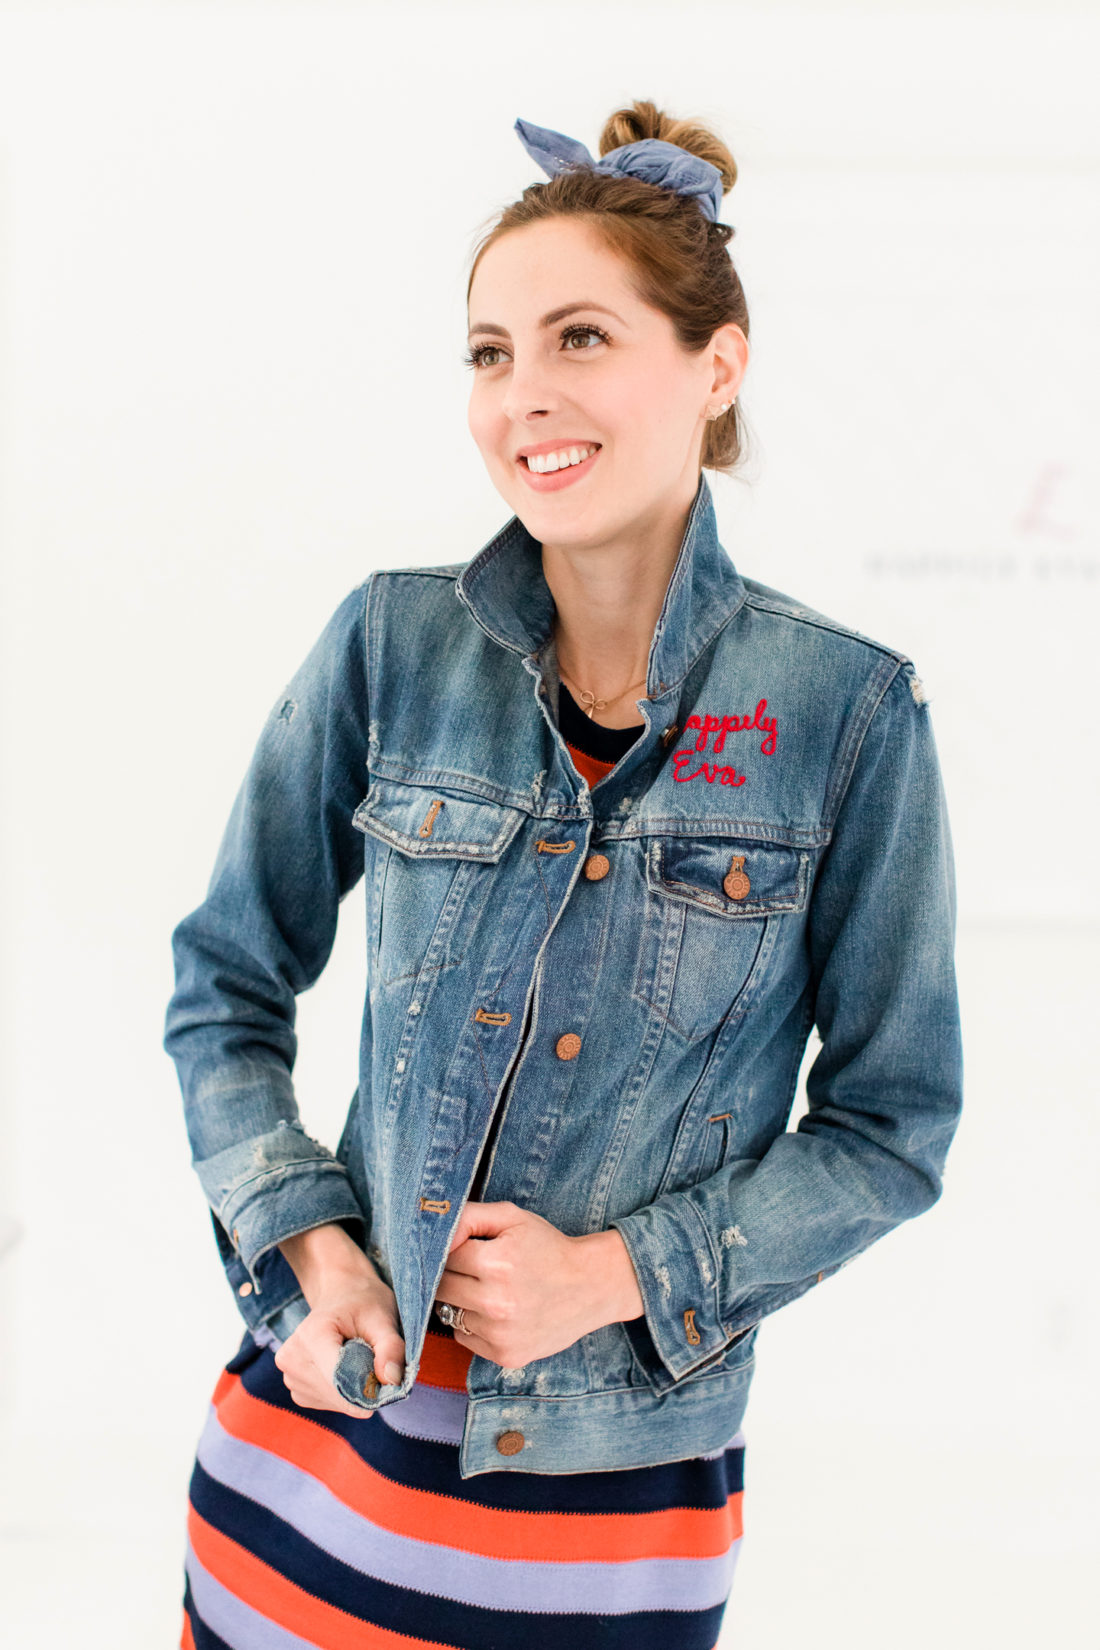 Eva Amurri Martino wears a striped dress and denim jacket and wears a simple kerchief bun in her hair